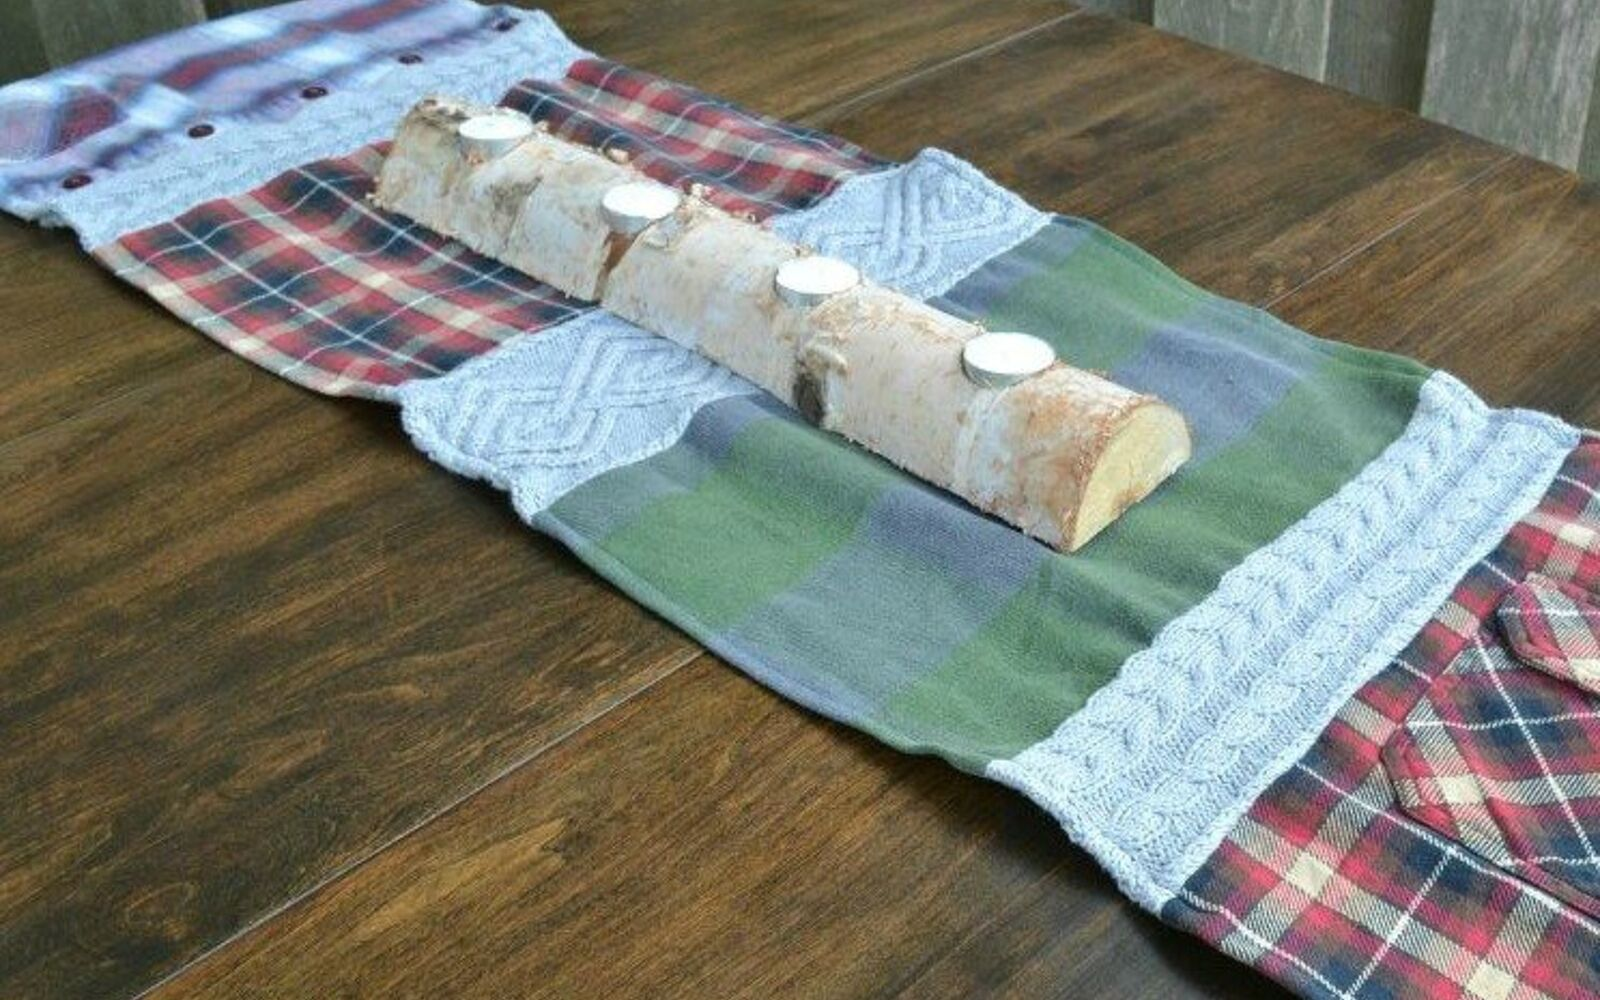 s 15 reasons not to trash your ugly worn out sweaters, crafts, repurposing upcycling, Sew bits together into a warm table runner